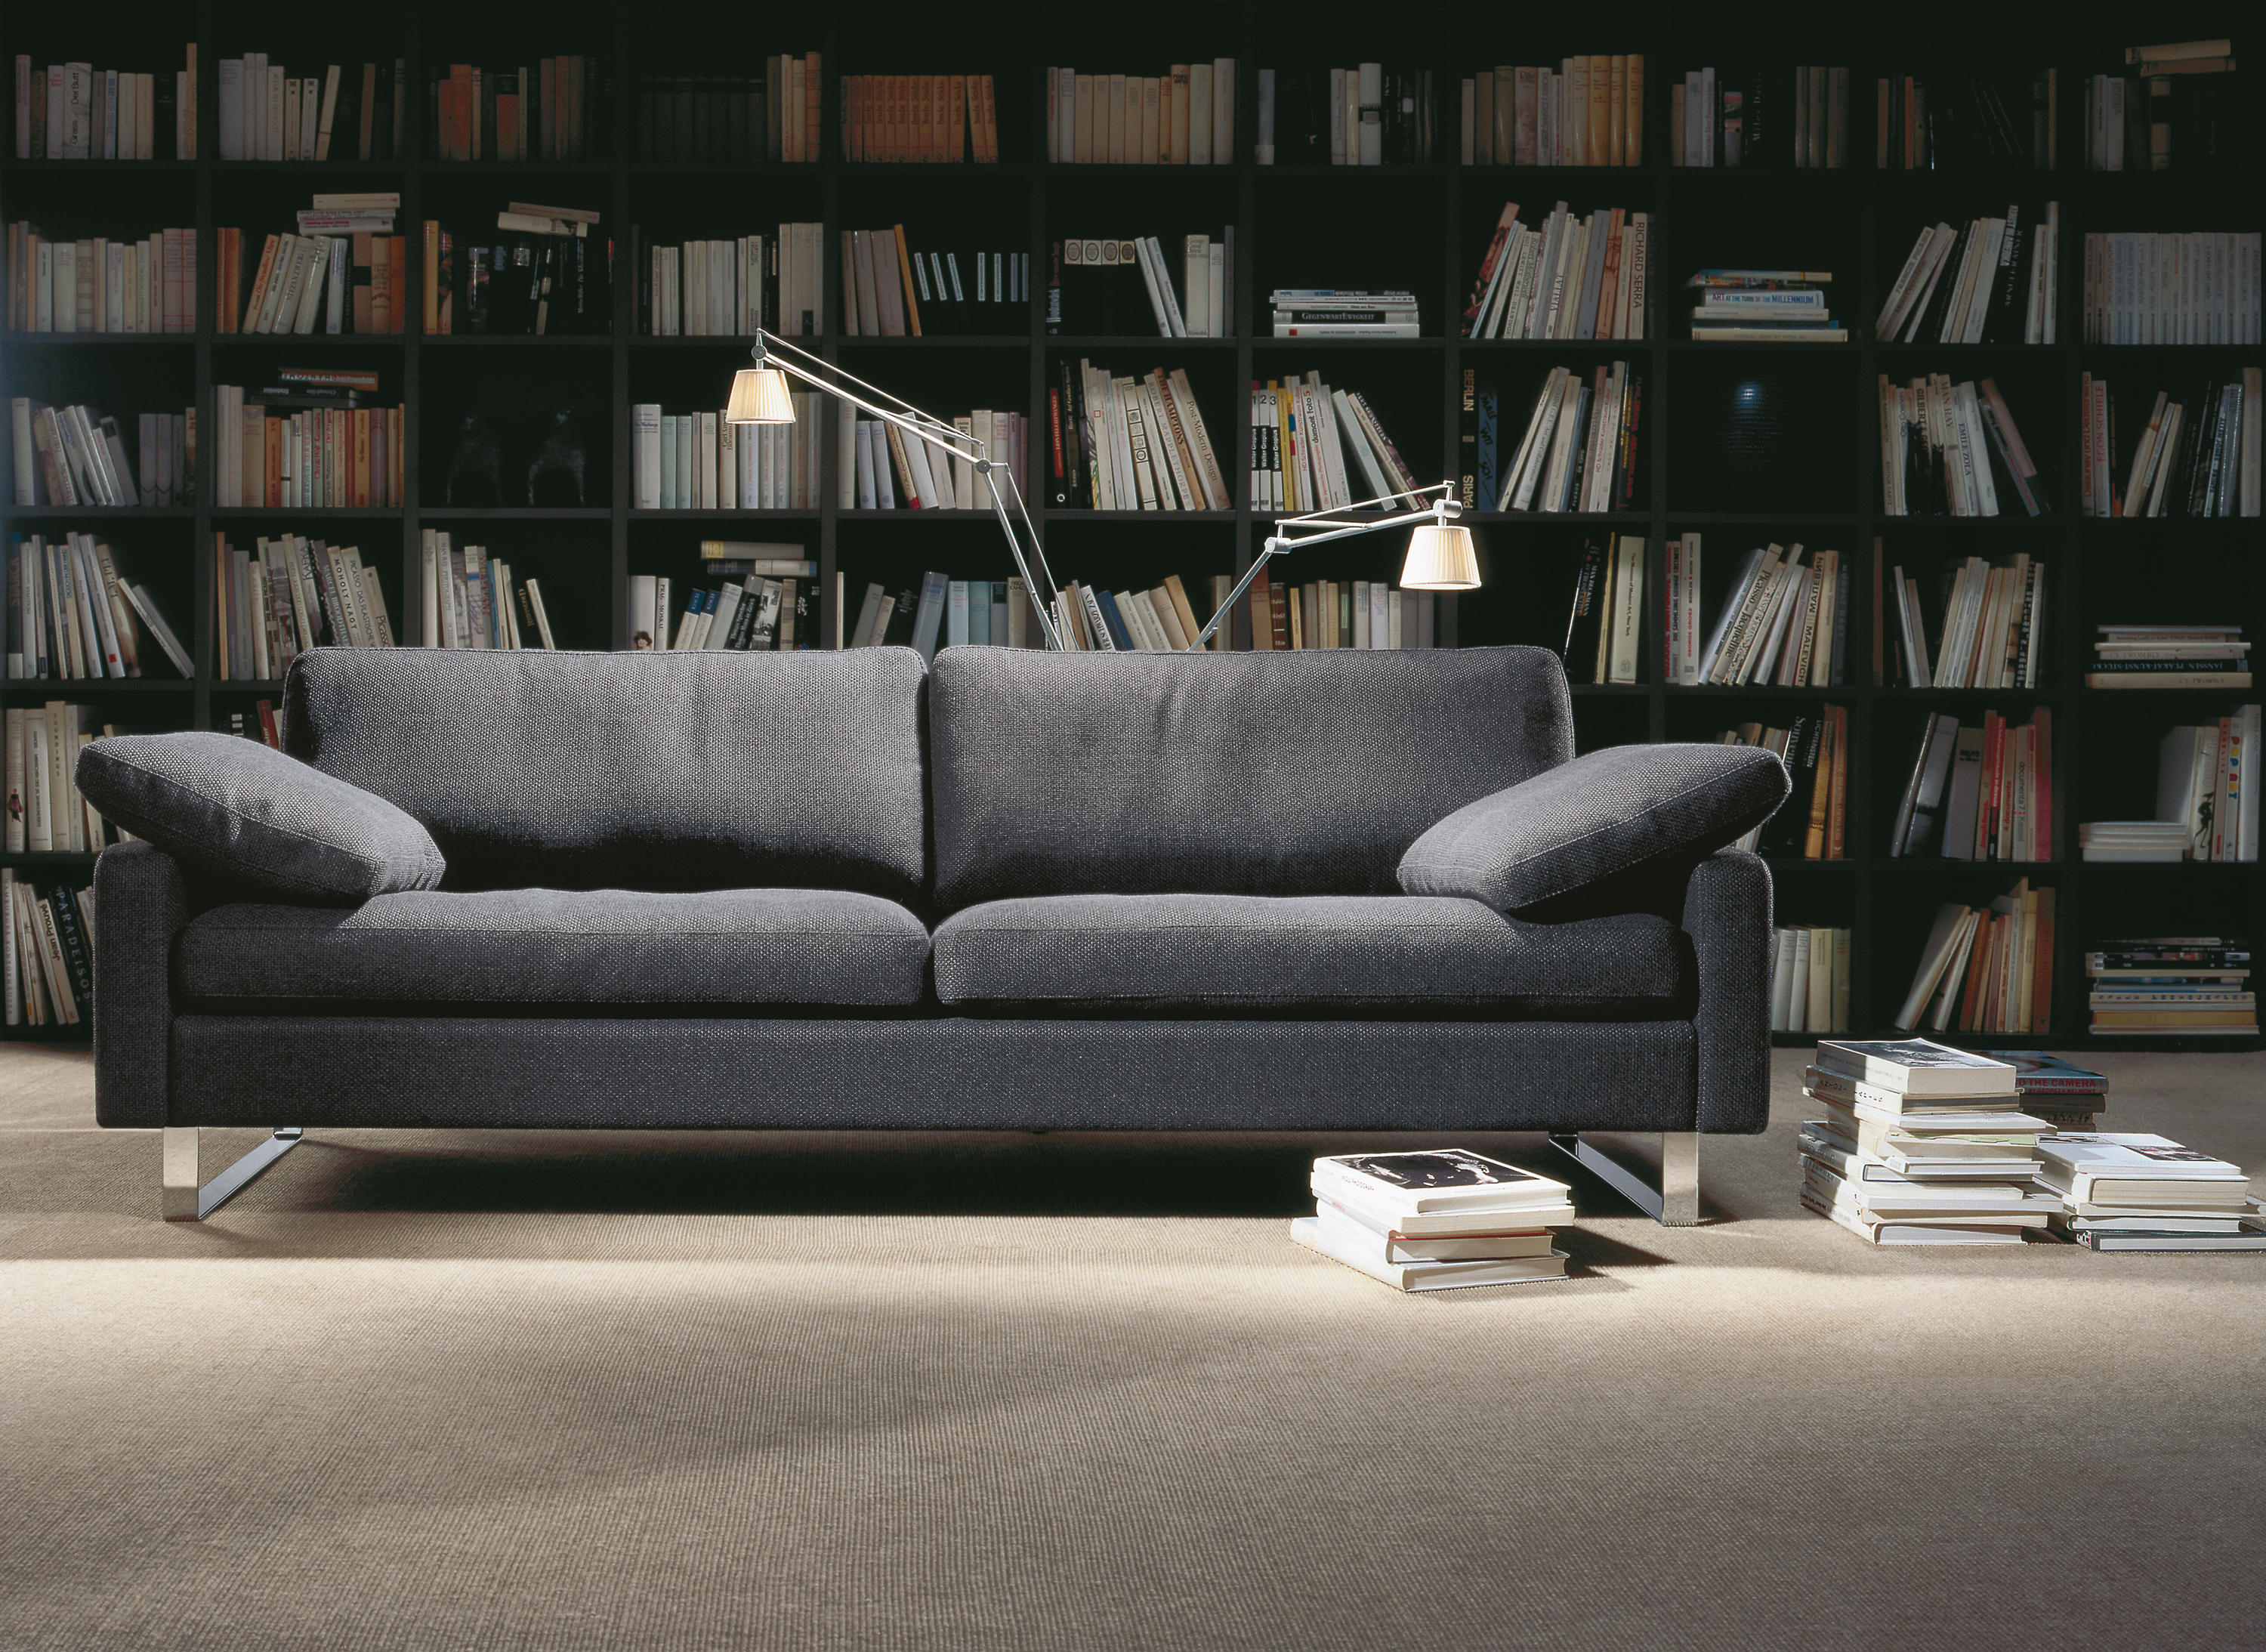 CONSETA - Lounge sofas from COR | Architonic